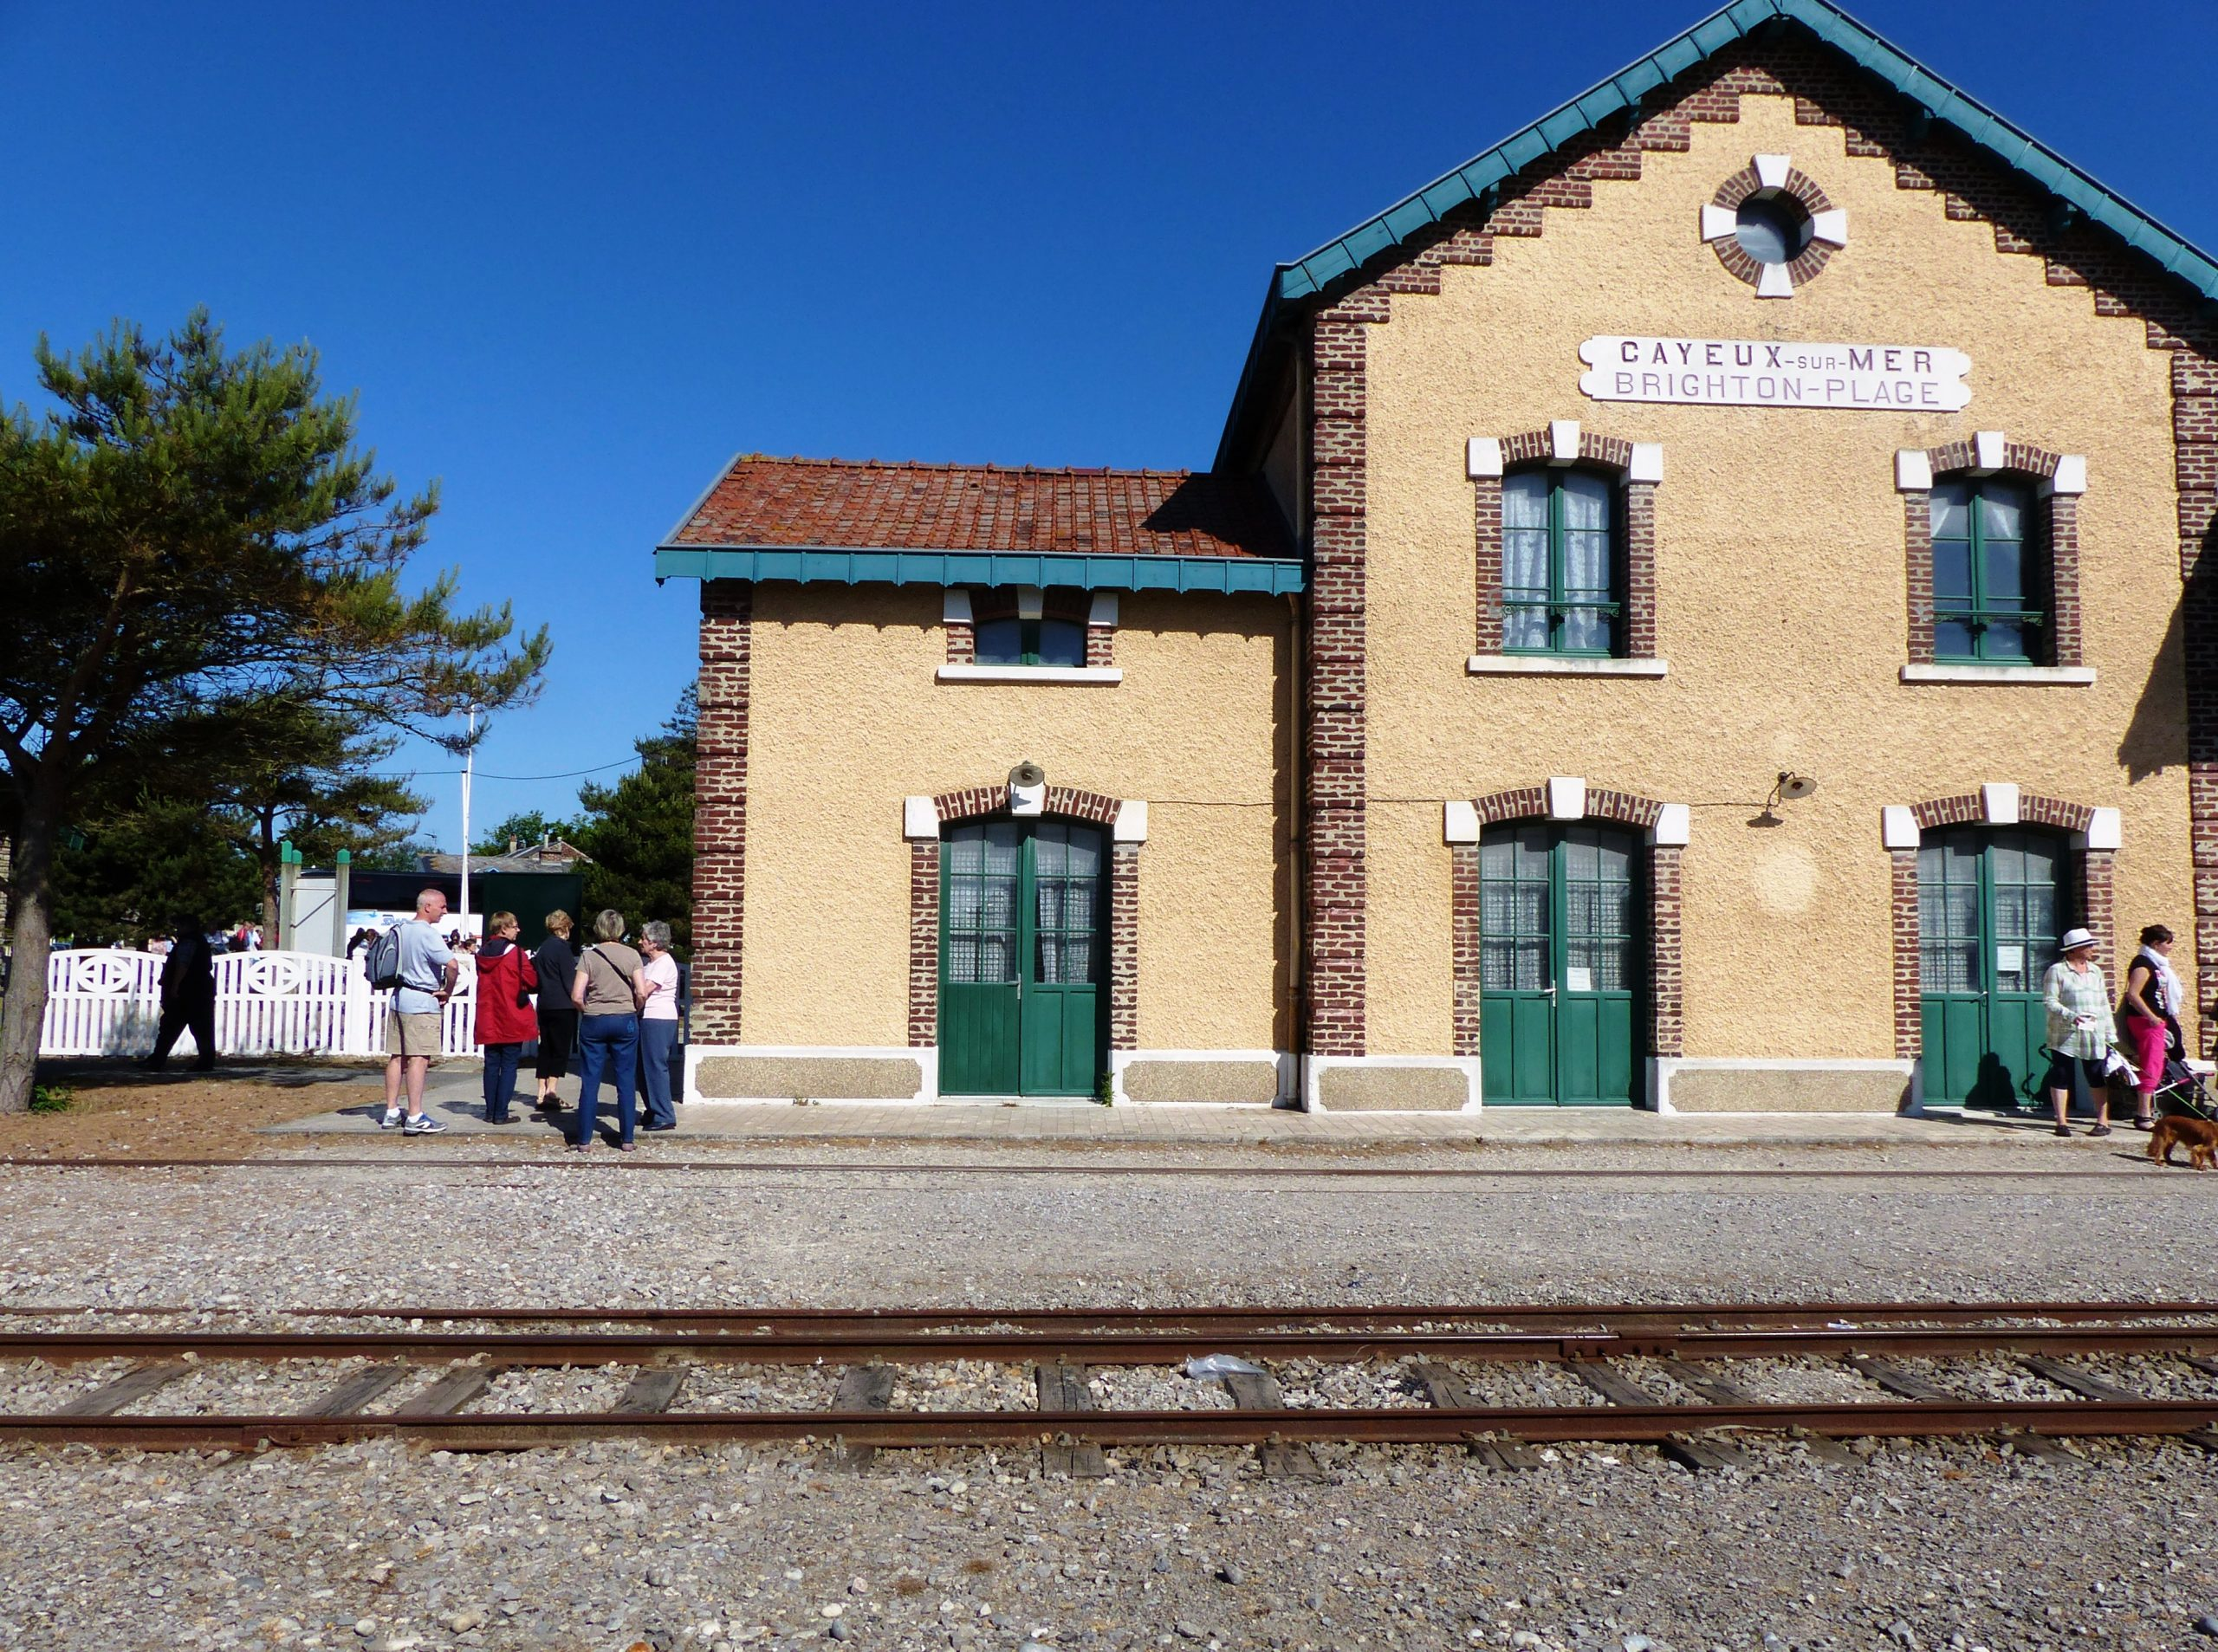 OTBaiedeSomme_Gare_Cayeux